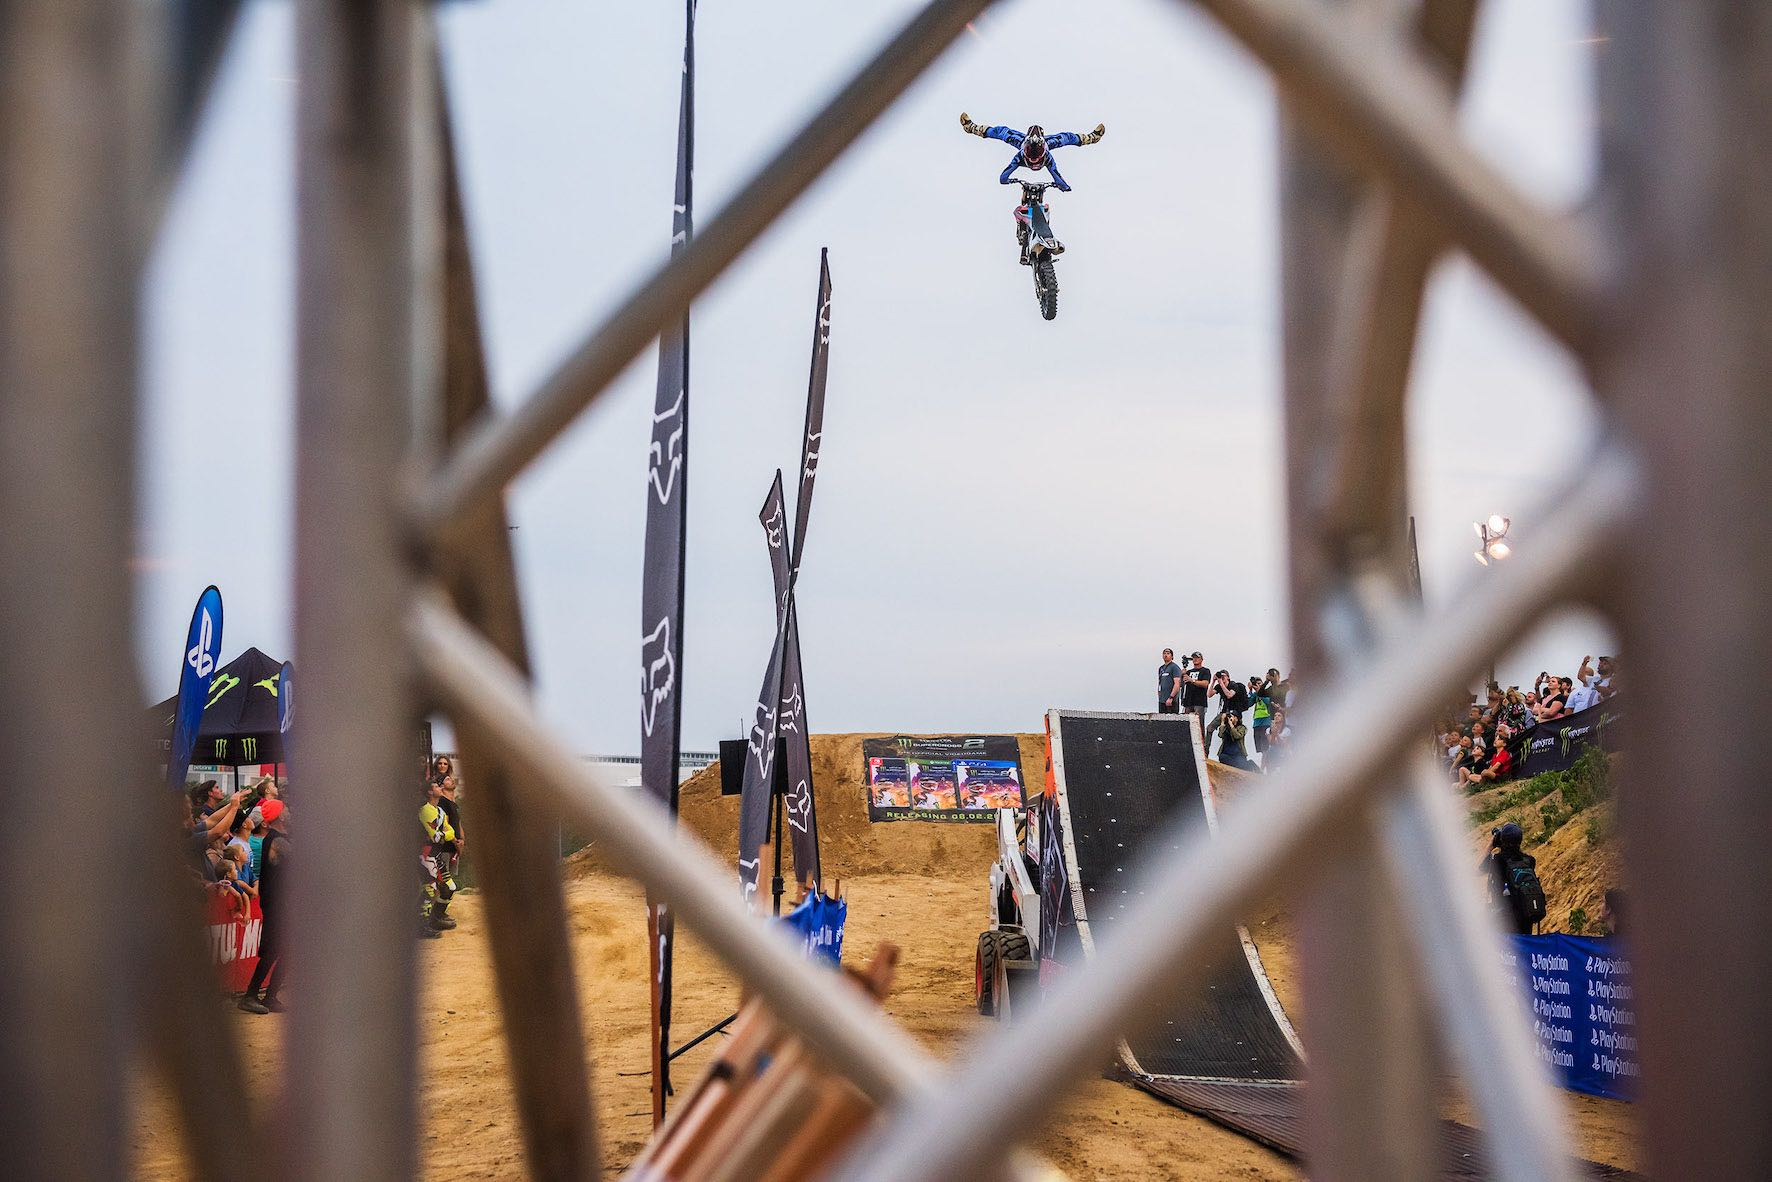 Results from the Freestyle Motocross contest at King of the Whip event